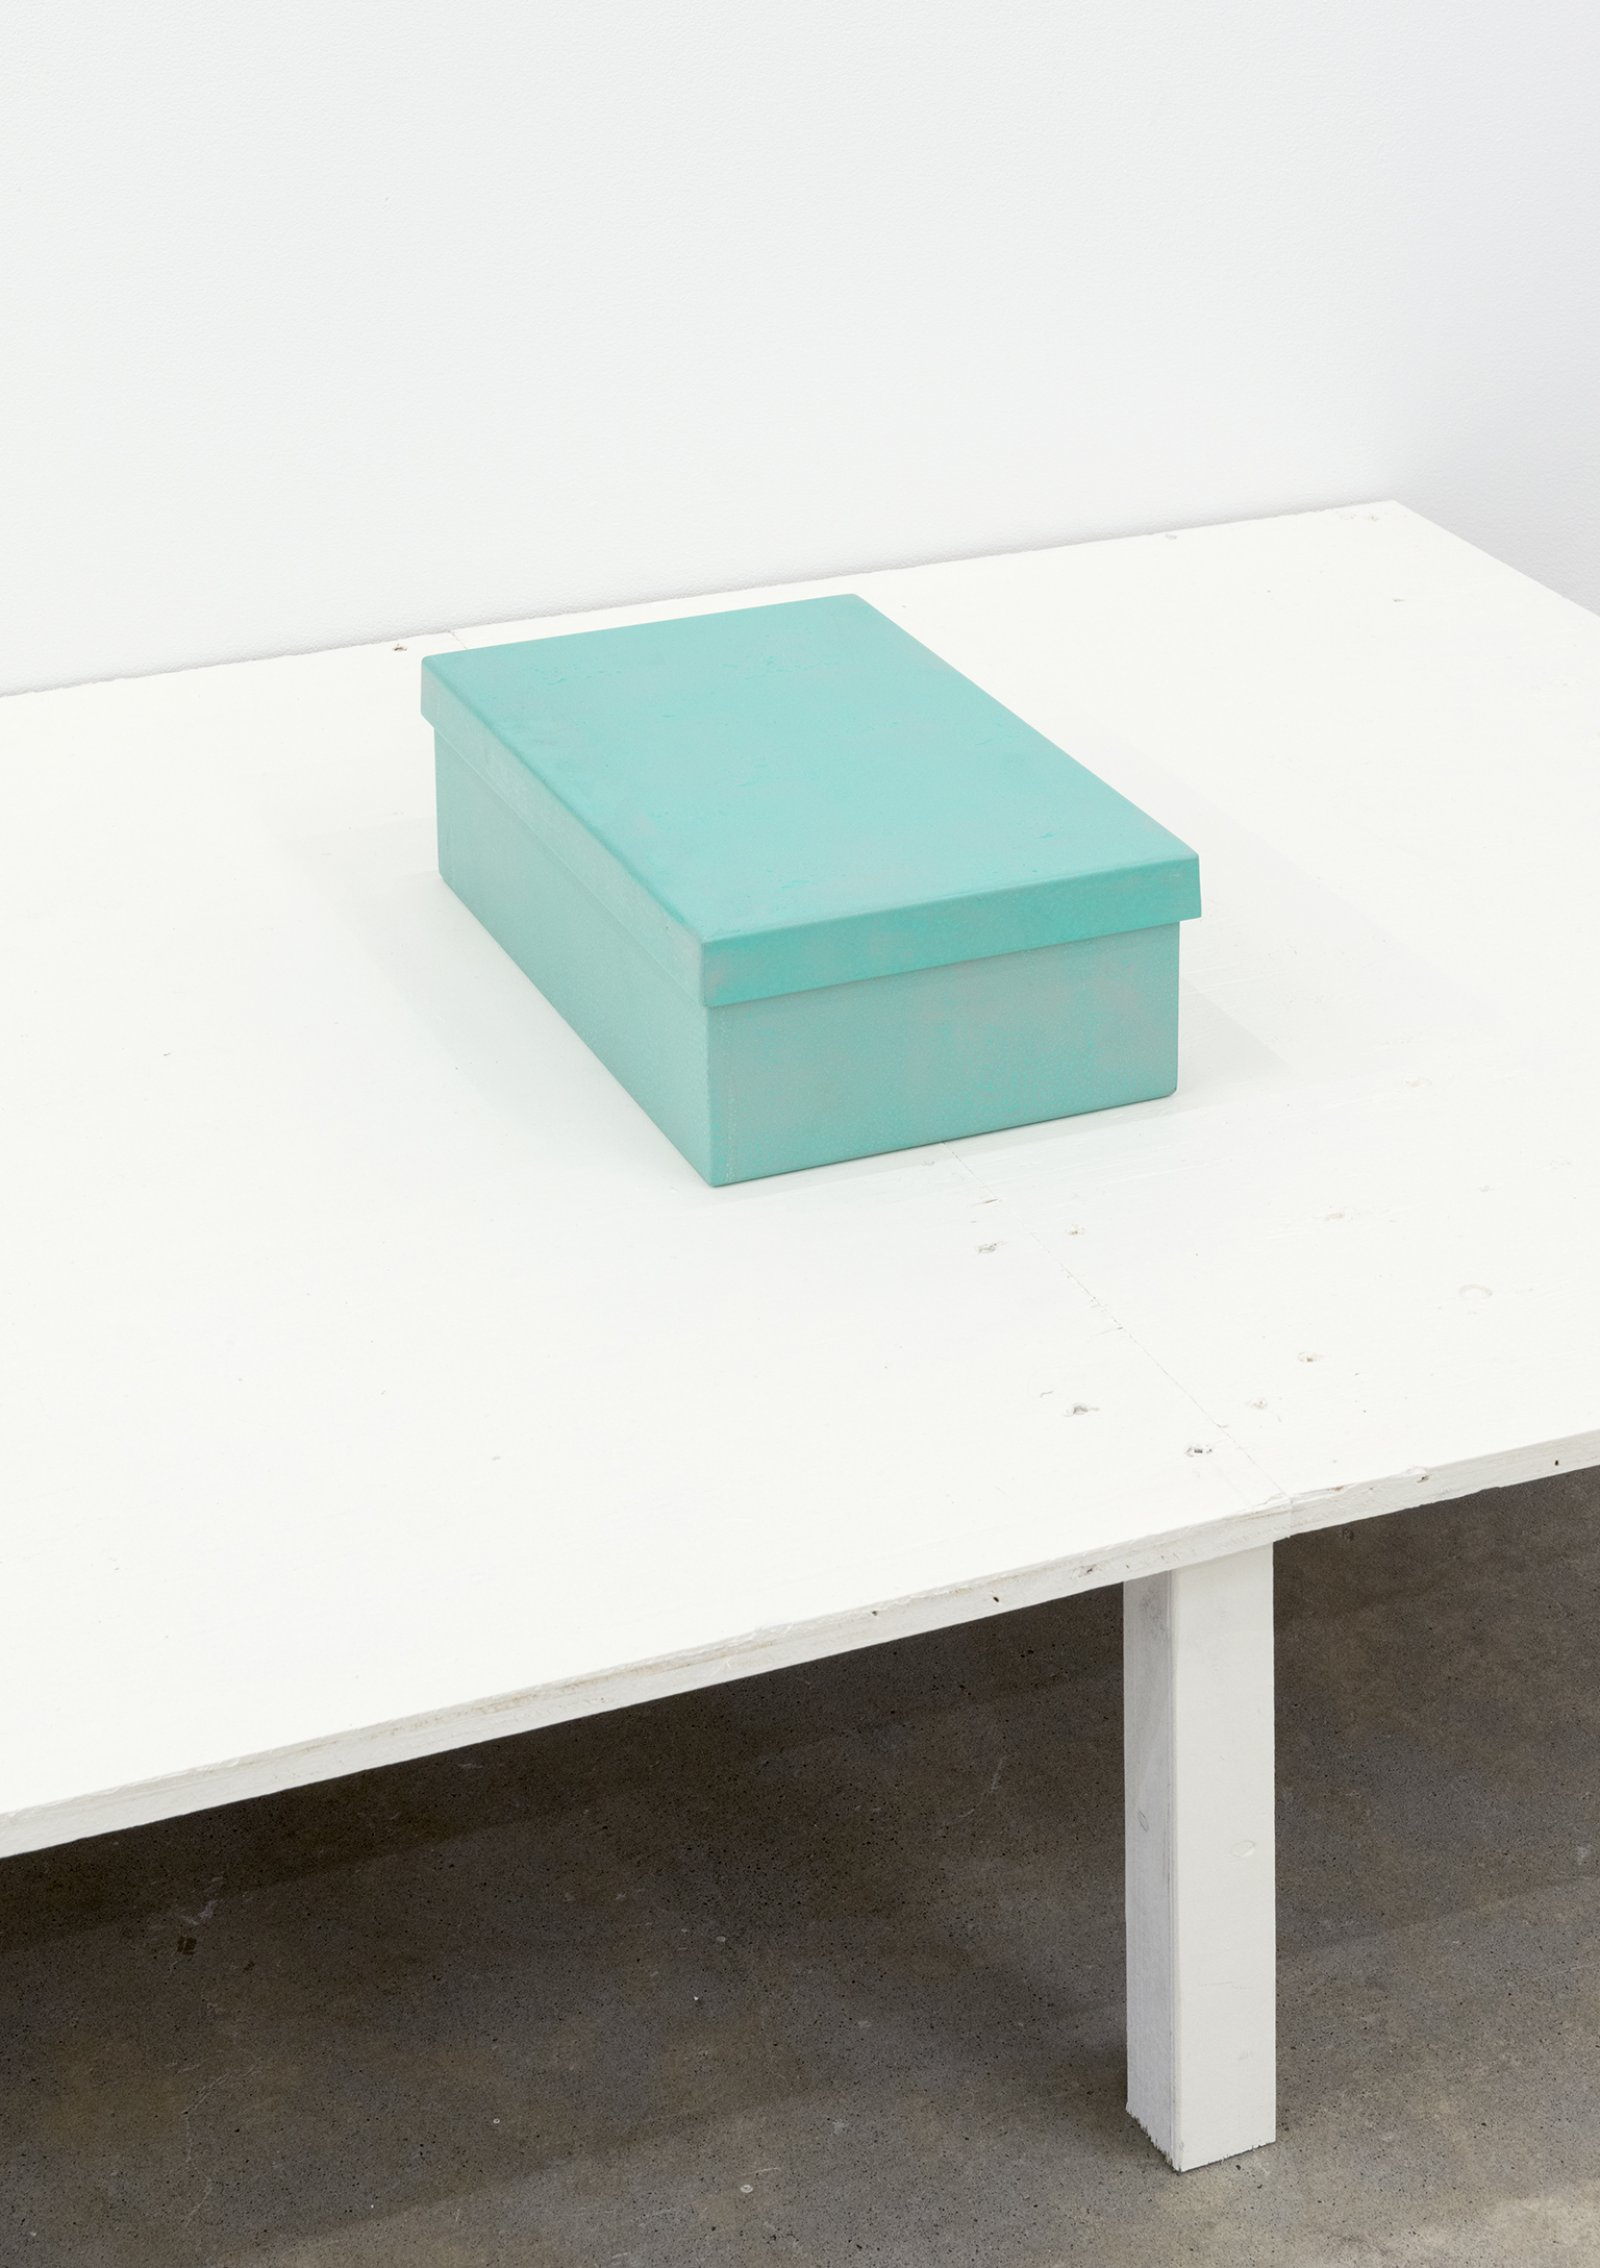 Gareth Moore, Shoebox (Steel), 2013, steel, enamel paint, 5 x 8 x 13 in. (11 x 21 x 34 cm)   by Ashes Withyman